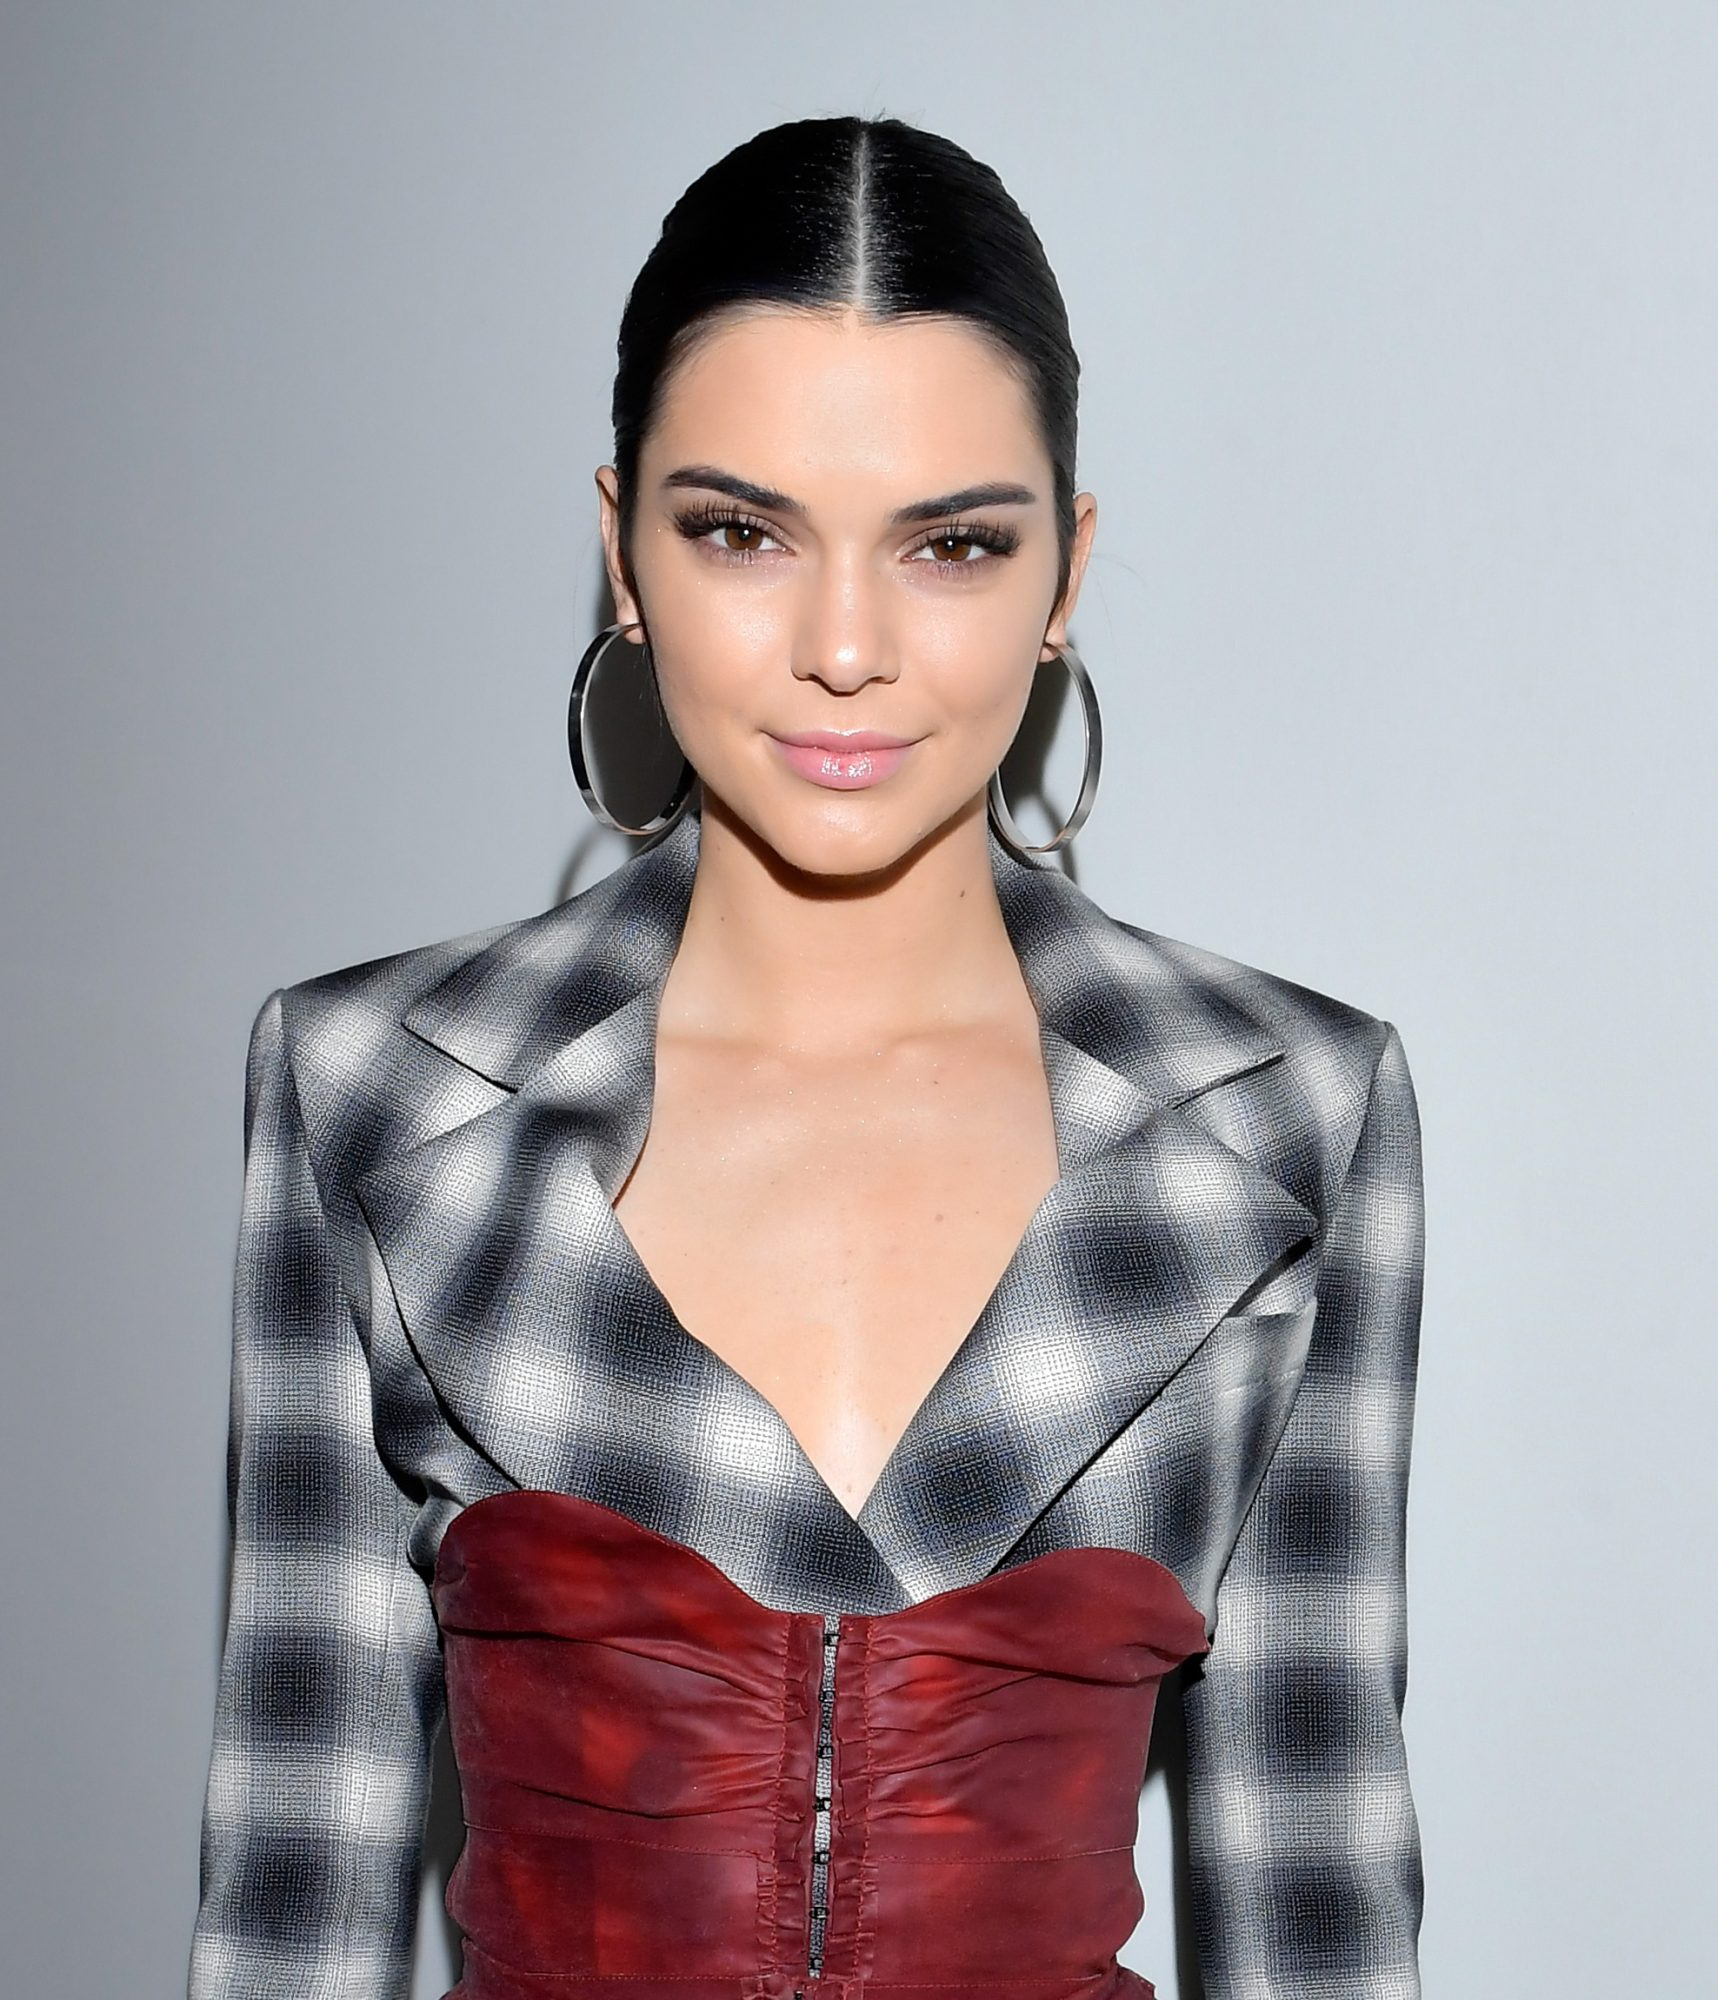 <p>Kendall Jenner - March 2, 2017 - LEAD</p>